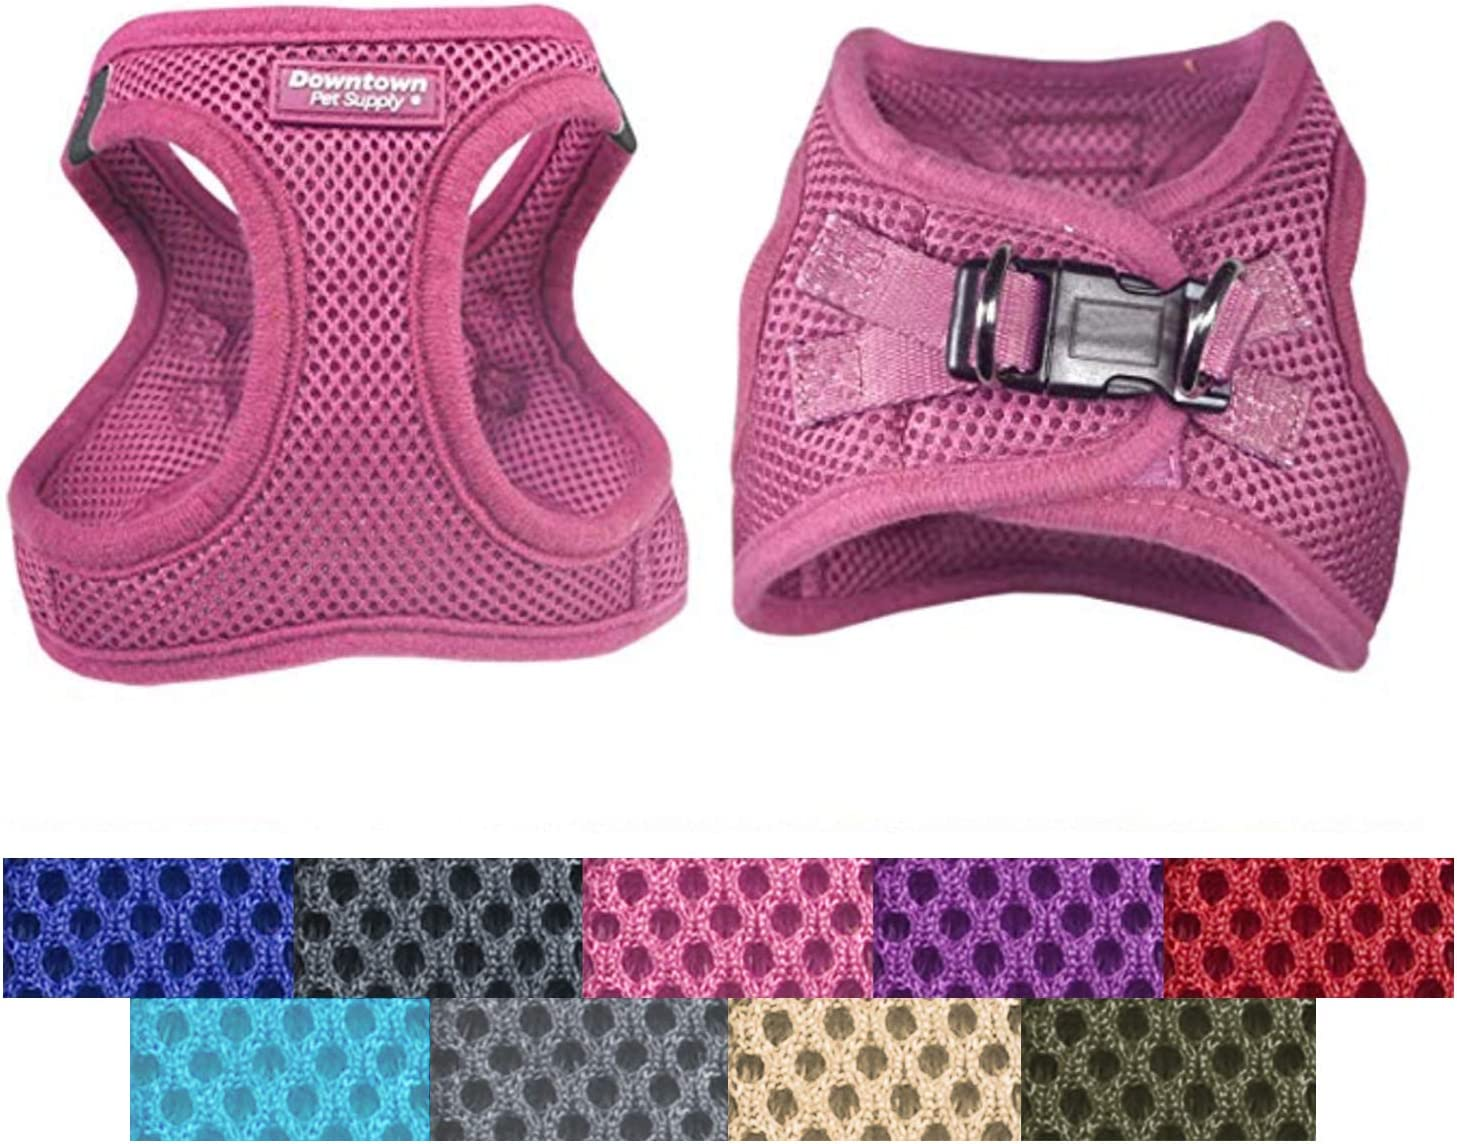 Easy to Put on Small Step in Adjustable Dog Harness Downtown Pet Supply No Pull Medium and Large Dogs